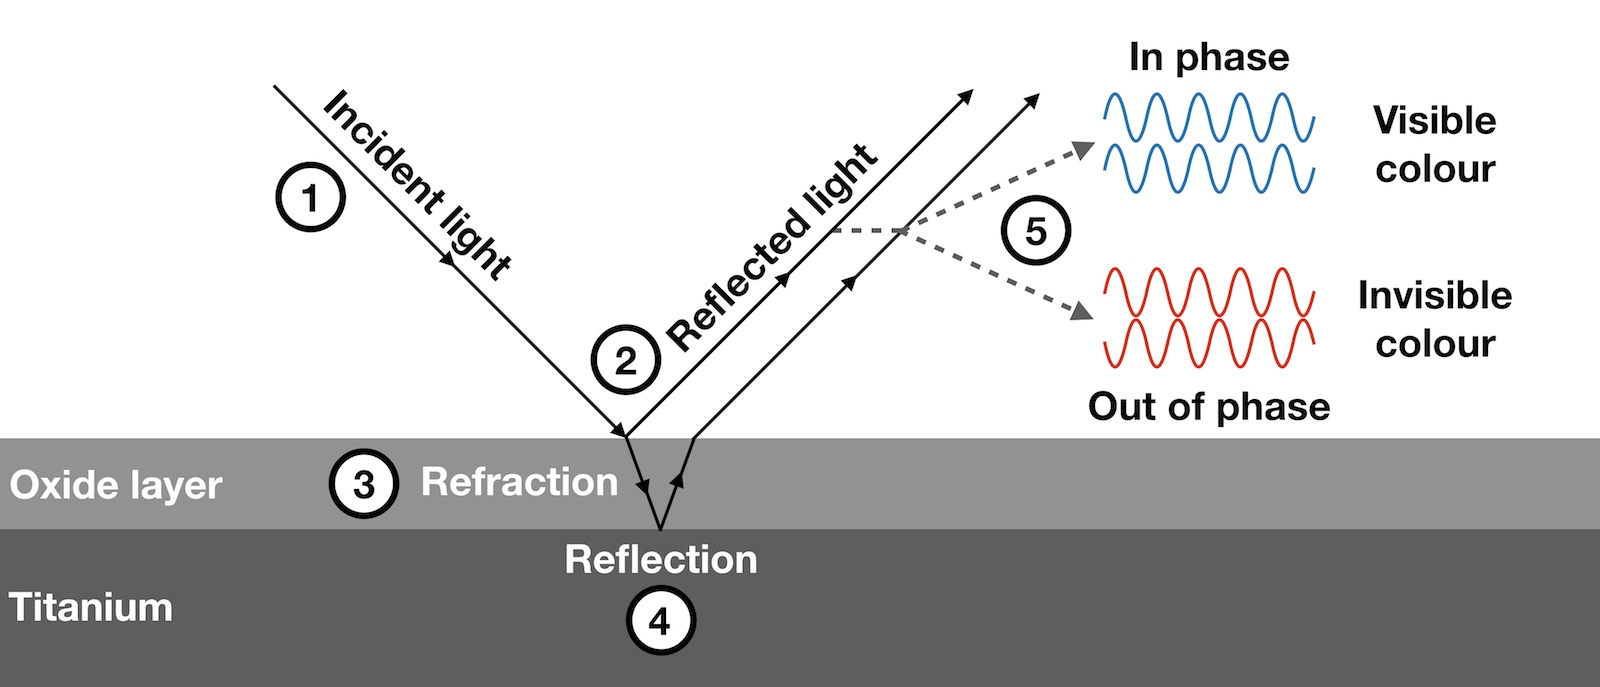 Depiction of light refraction and reflection leading to the formation of interference colours